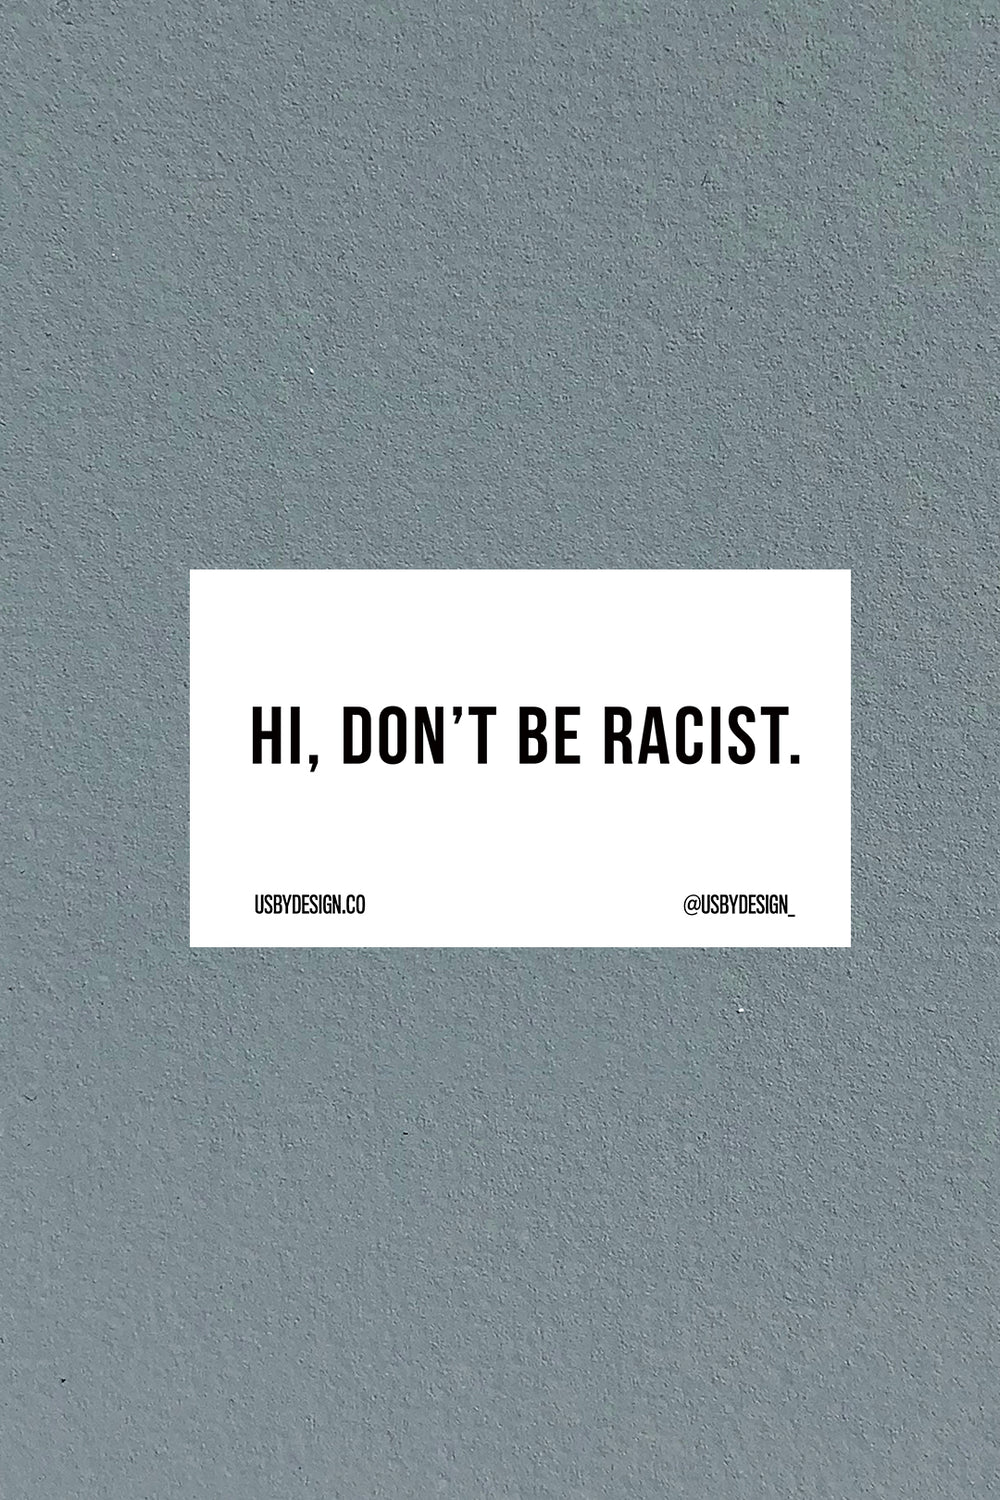 DON'T BE RACIST STICKER